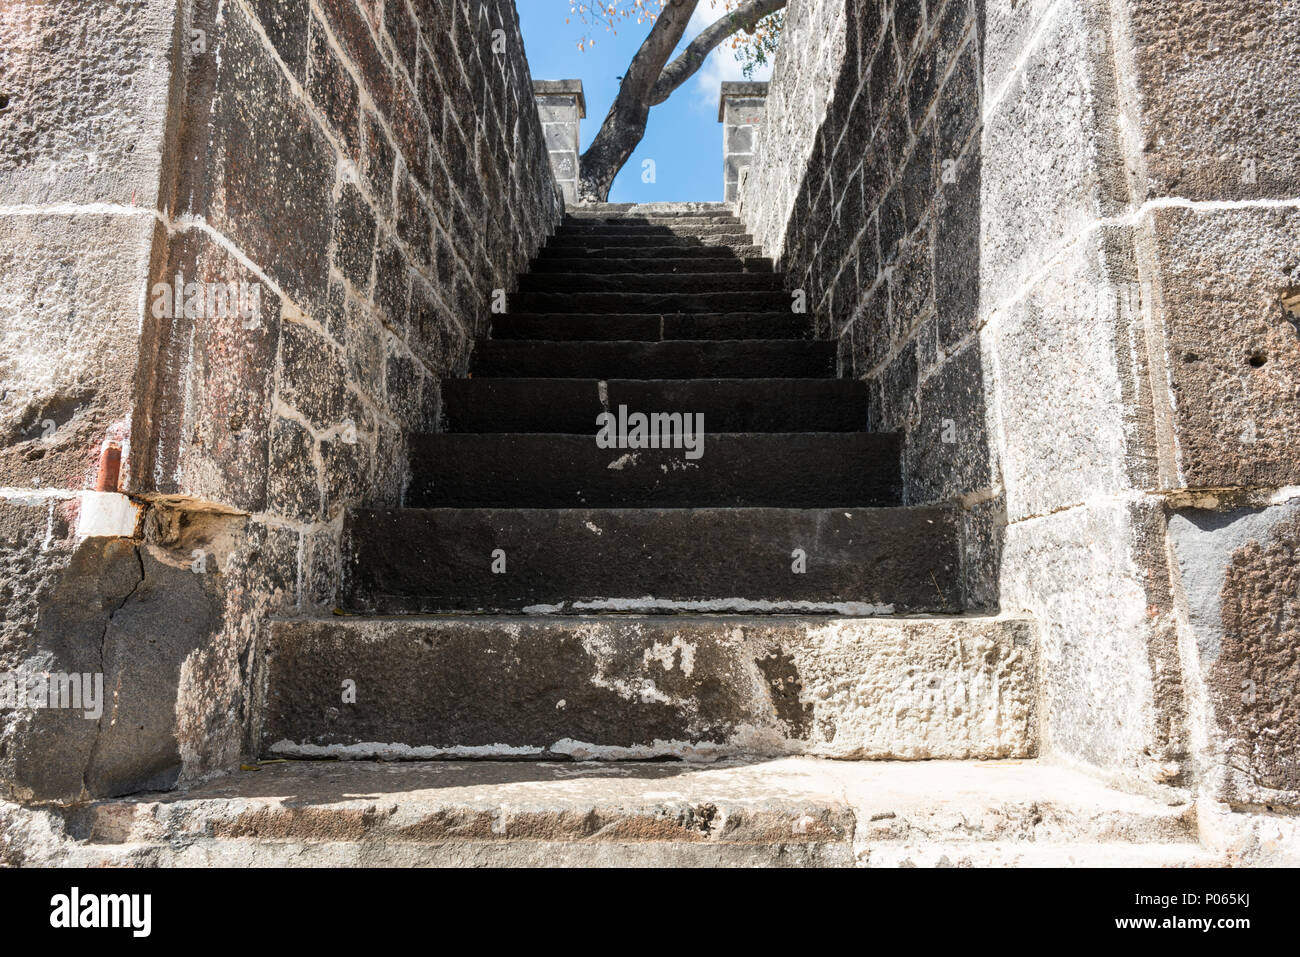 """Steps to a new life at Aapravasi Ghat (Hindi for the """"landing place of immigrants""""), previously known as Coolie Ghat. Port Louis. Mauritius Stock Photo"""